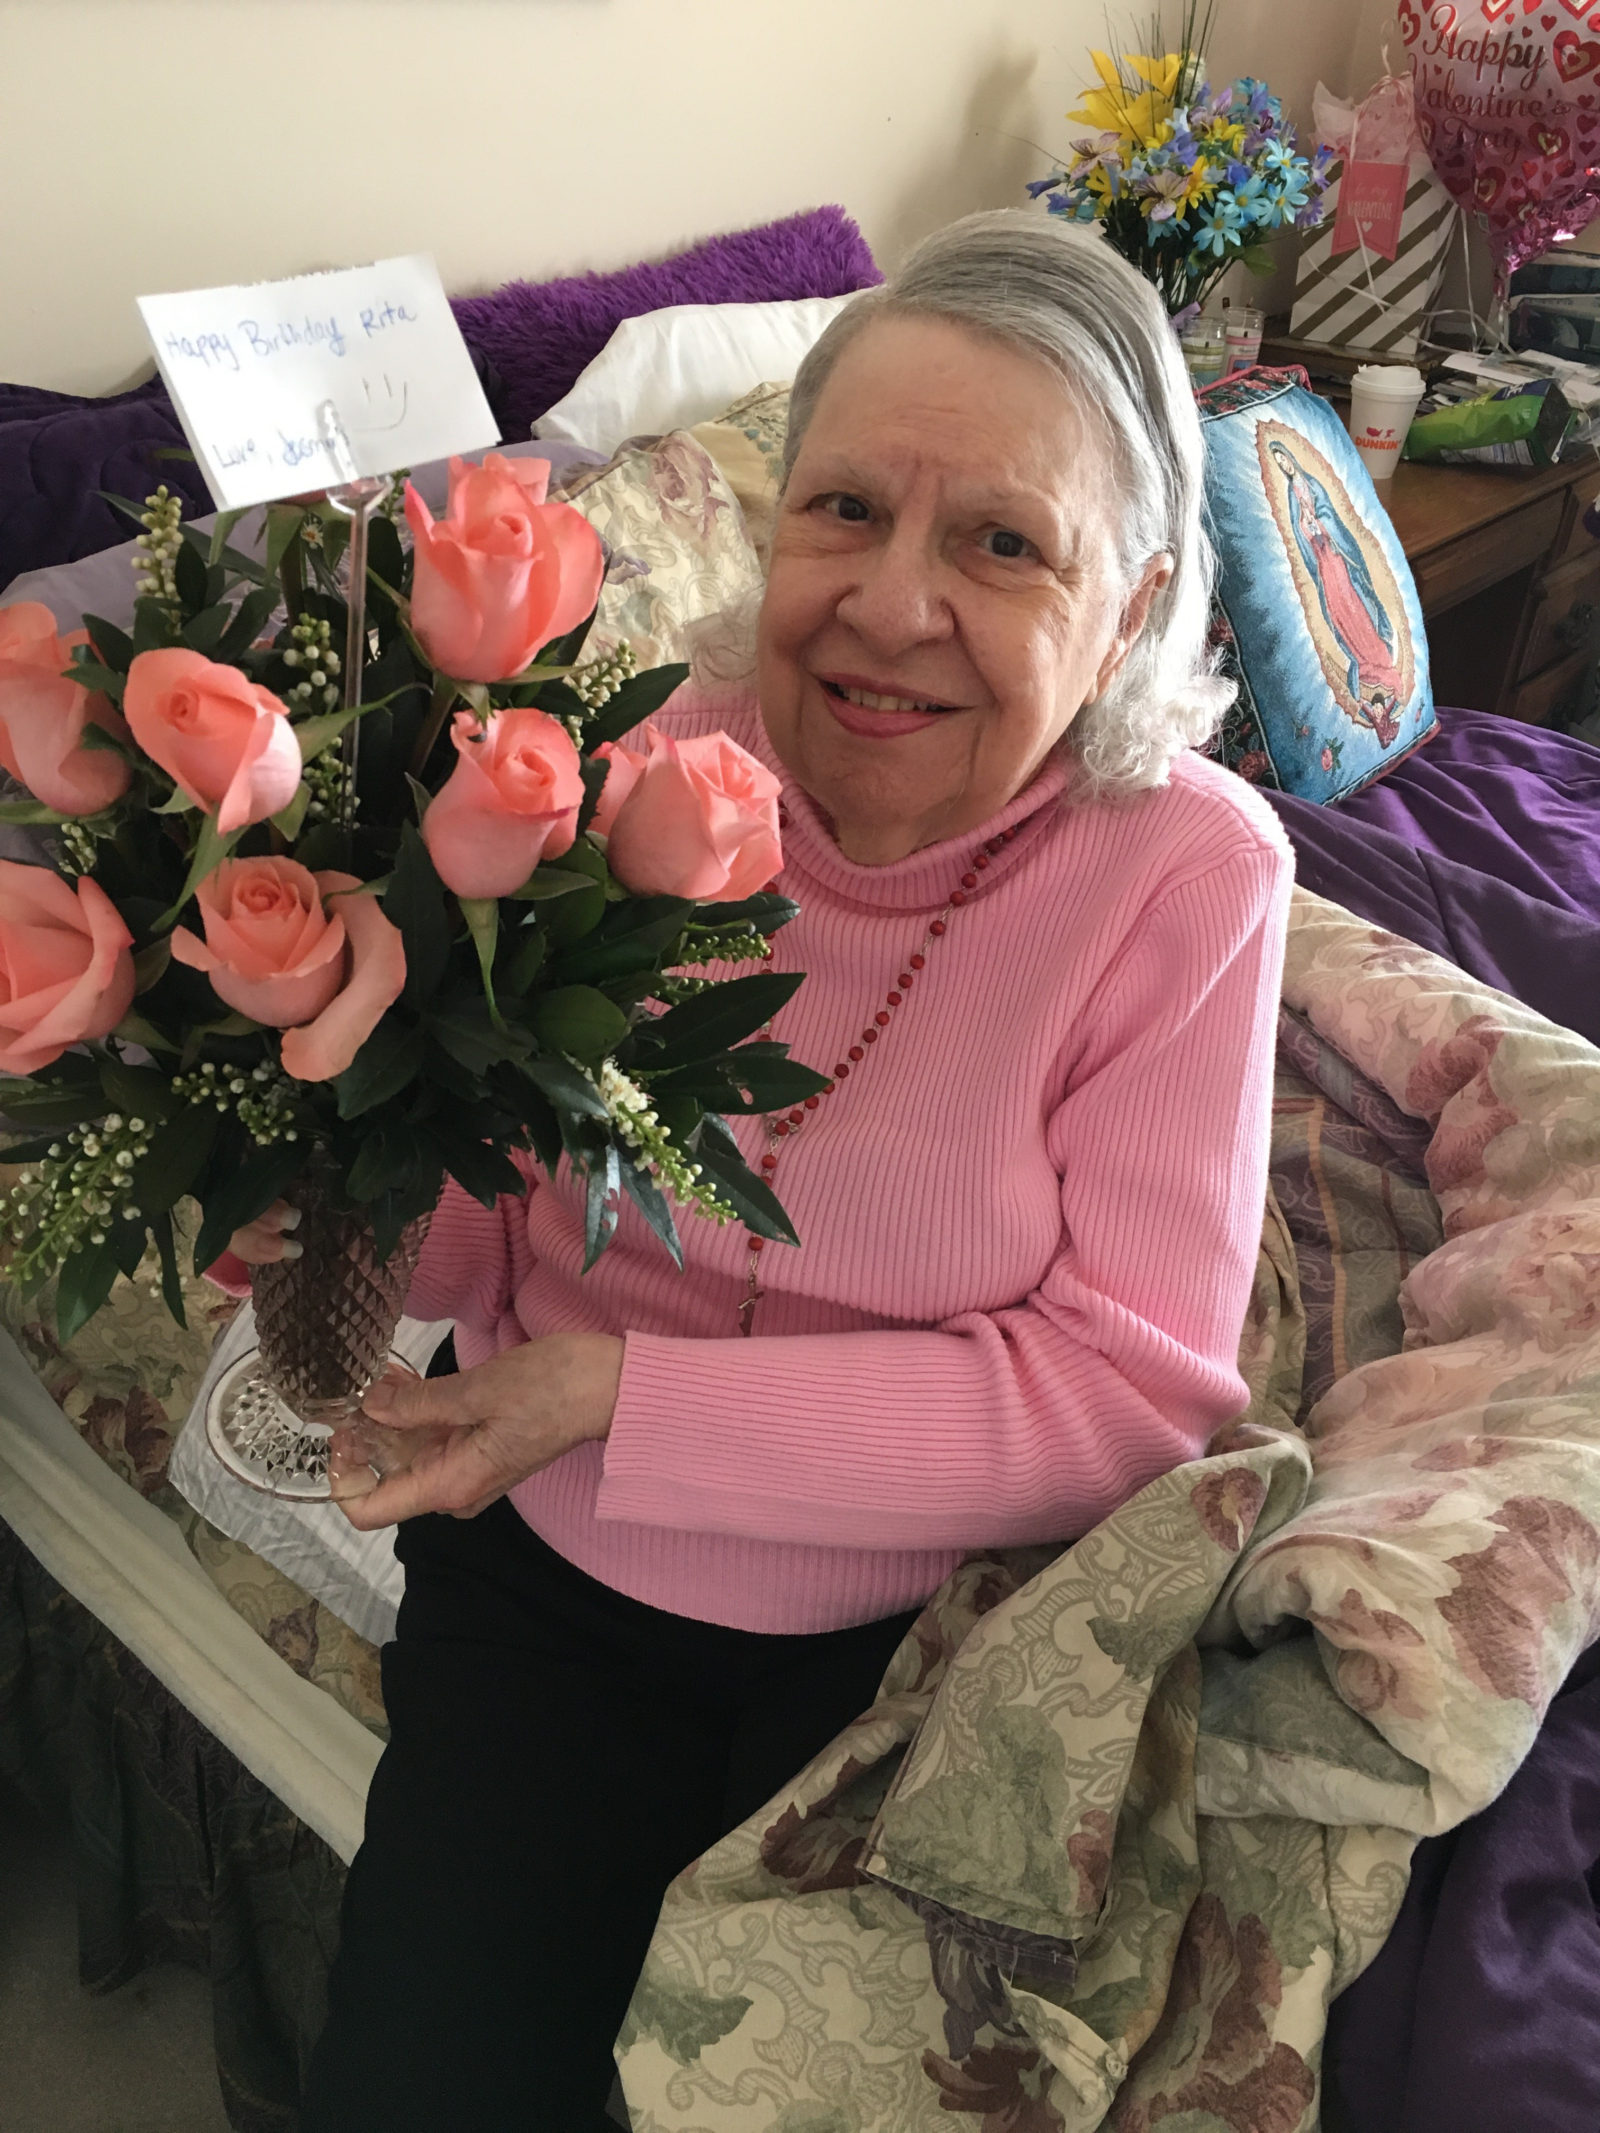 Caregiver Alpharetta GA - Happy Birthday Miss Rita